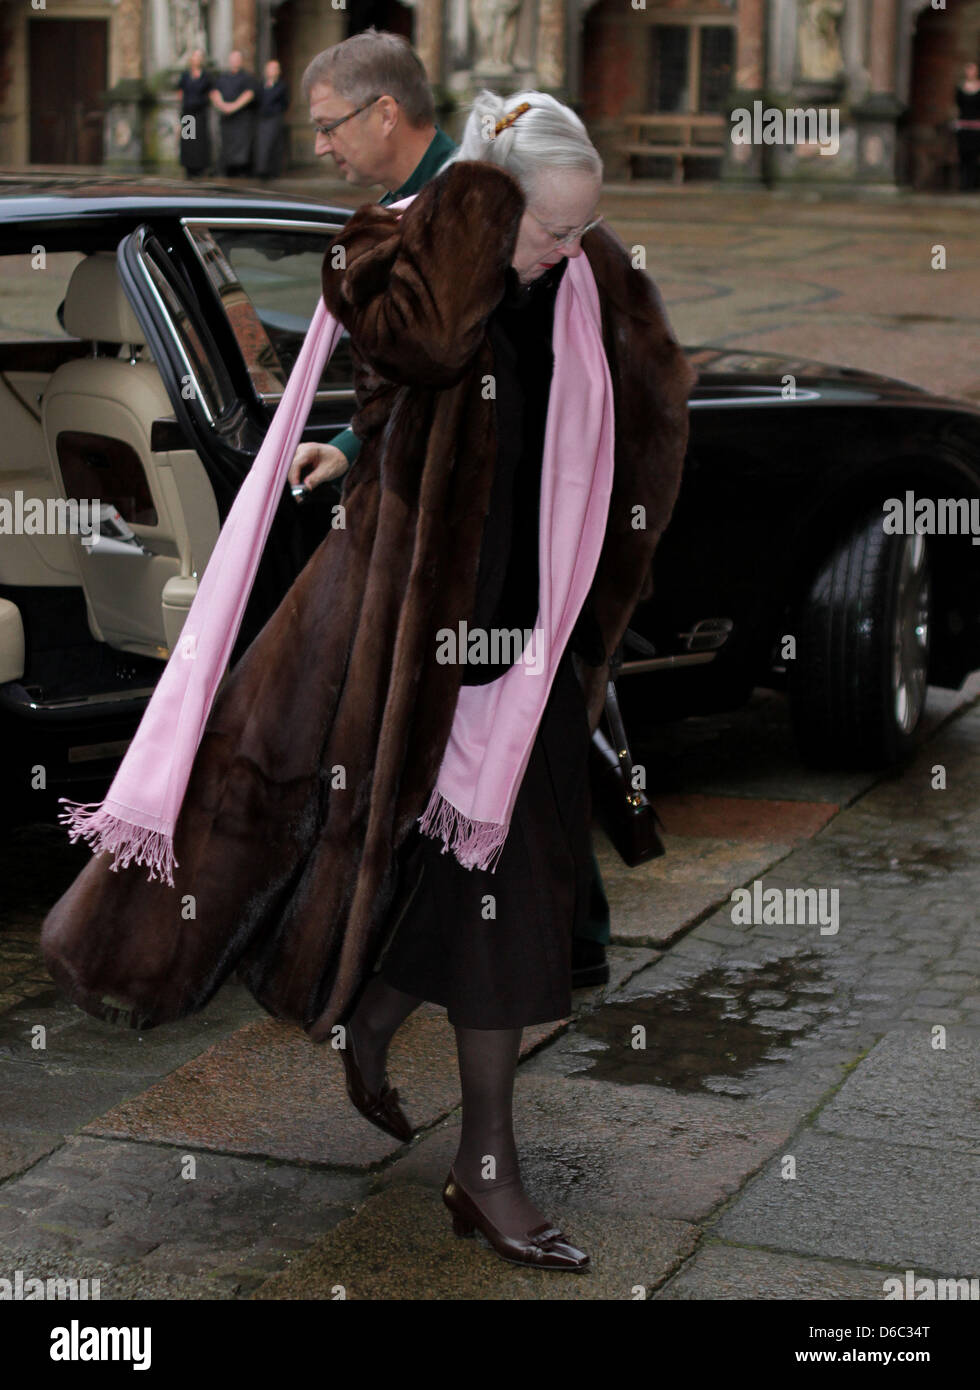 815f2f5bc79 Queen Margrethe II. of Denmark attending the exhibition at Frederiksborg  Castle in Hillerød to mark Queen Margrethe s 40-year anniversary as regent,  ...